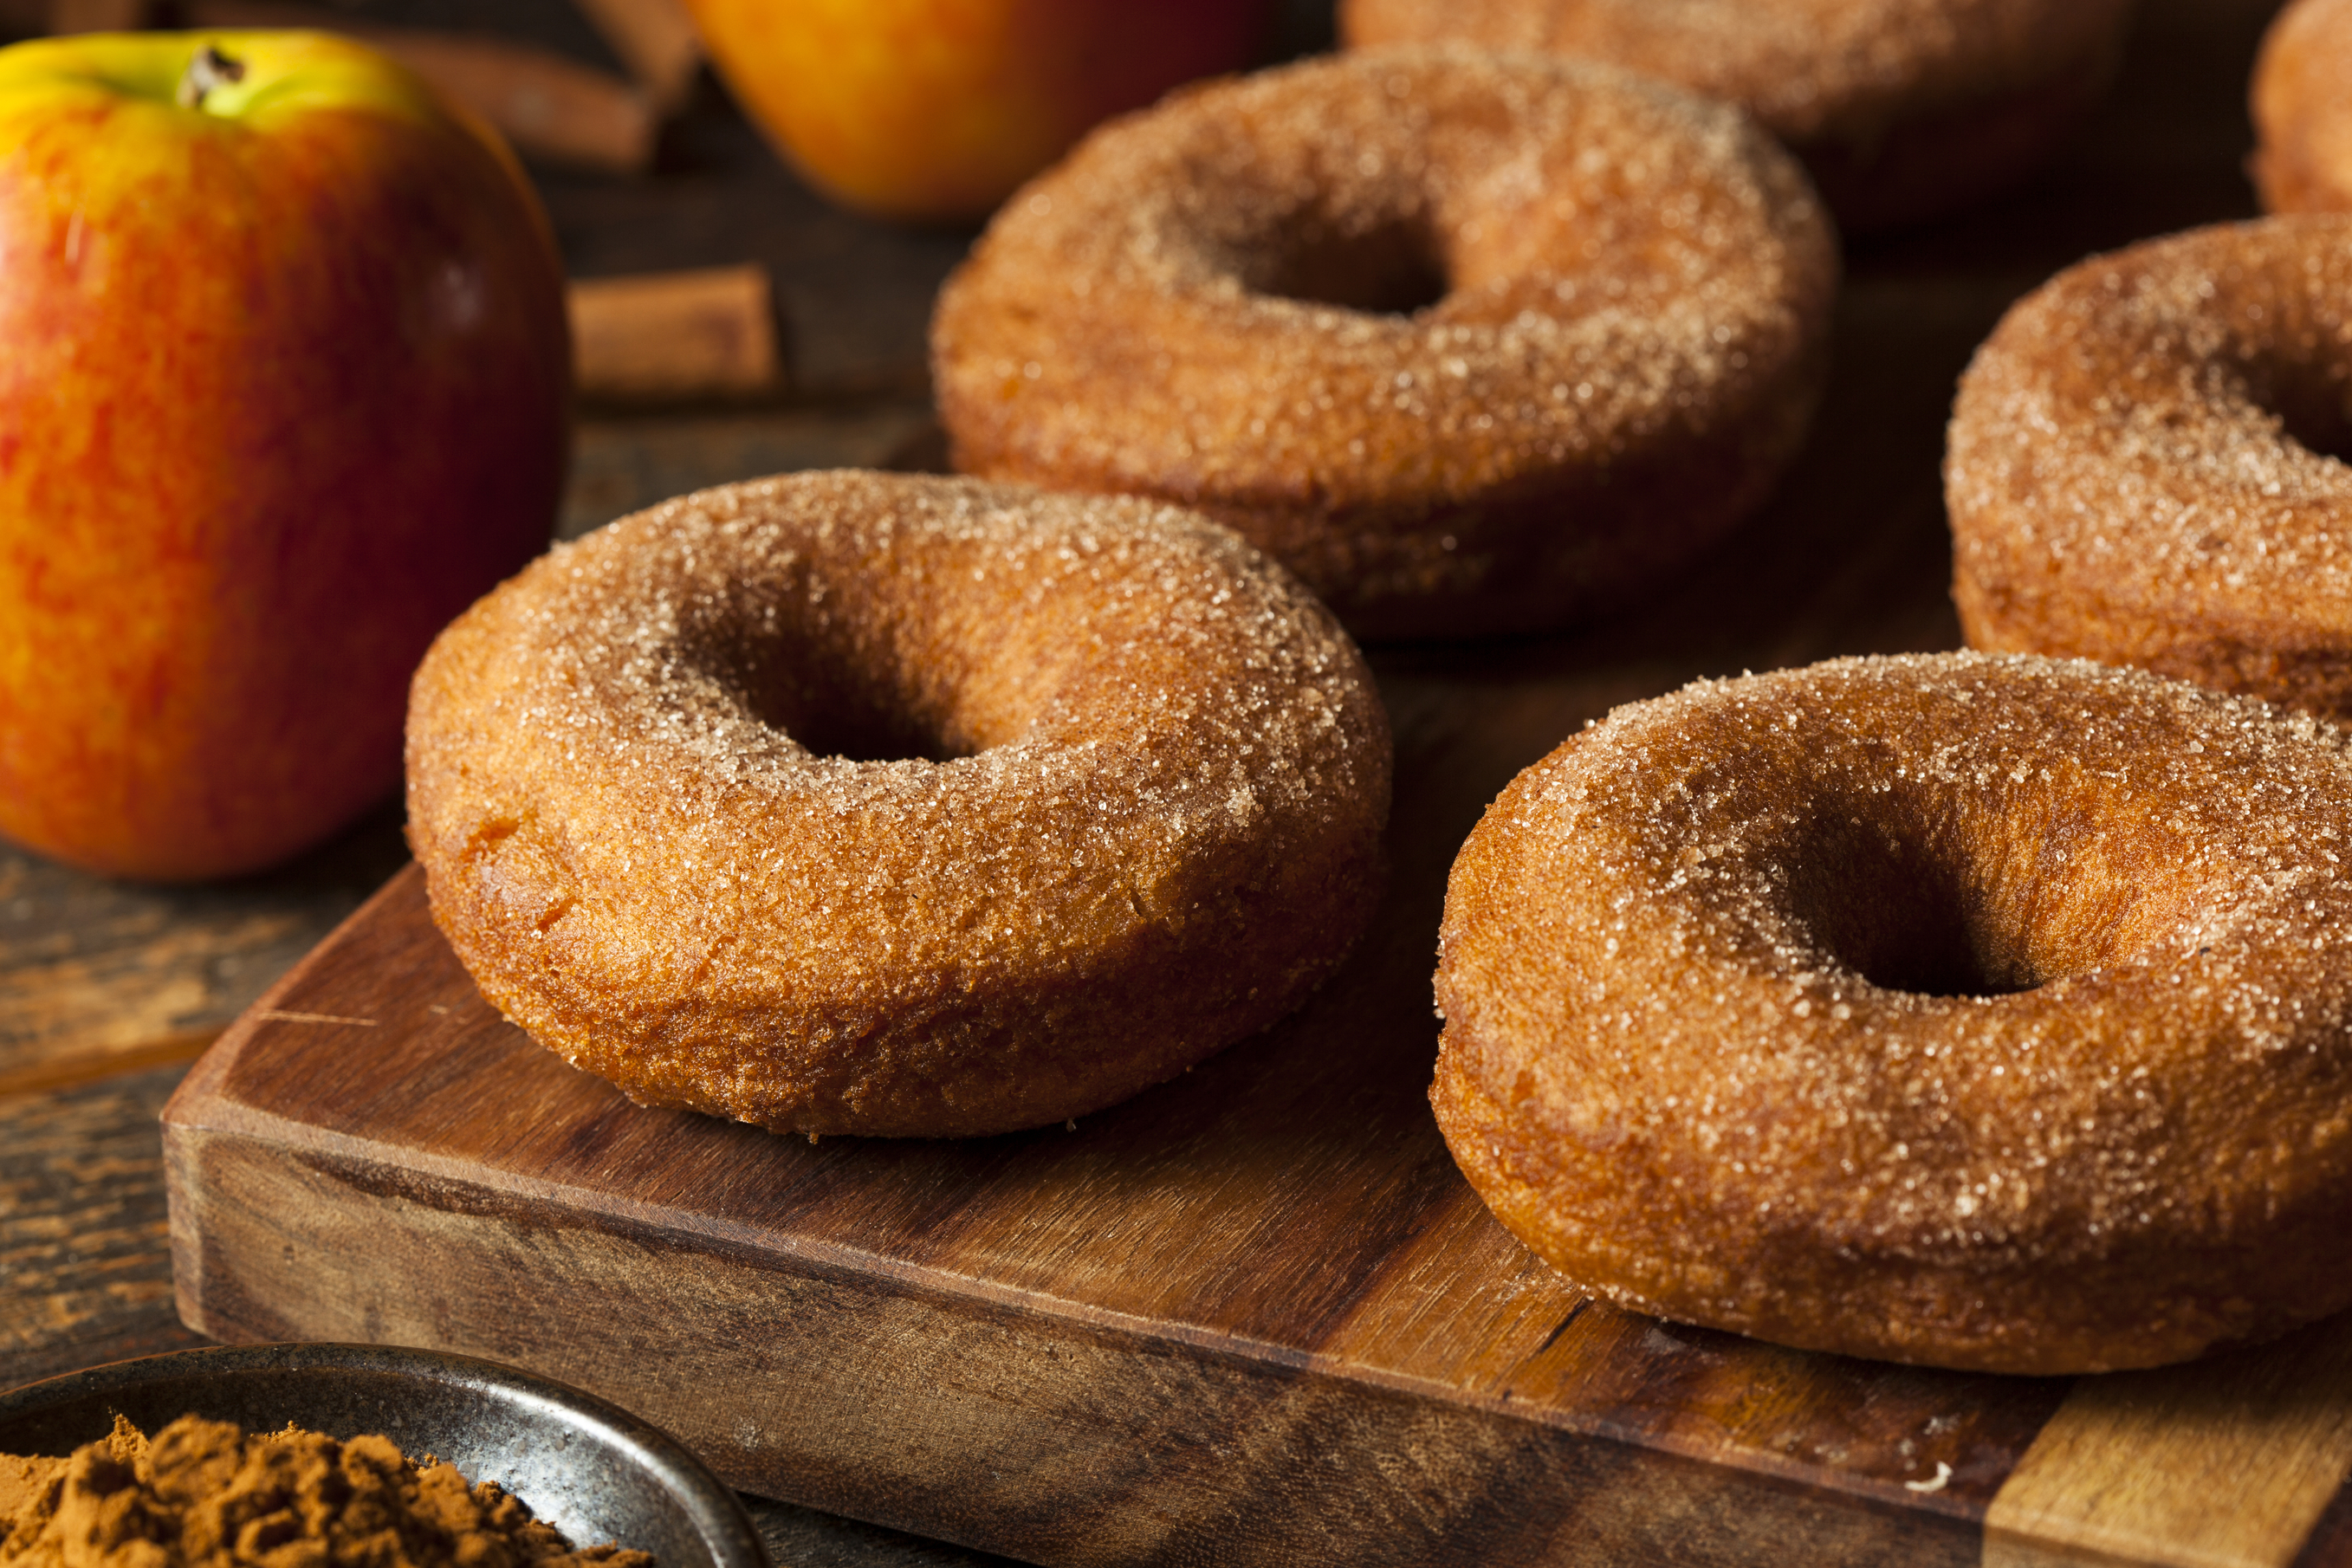 636510882401060287Warm-Apple-Cider-Donuts-000049174820_Large.jpg